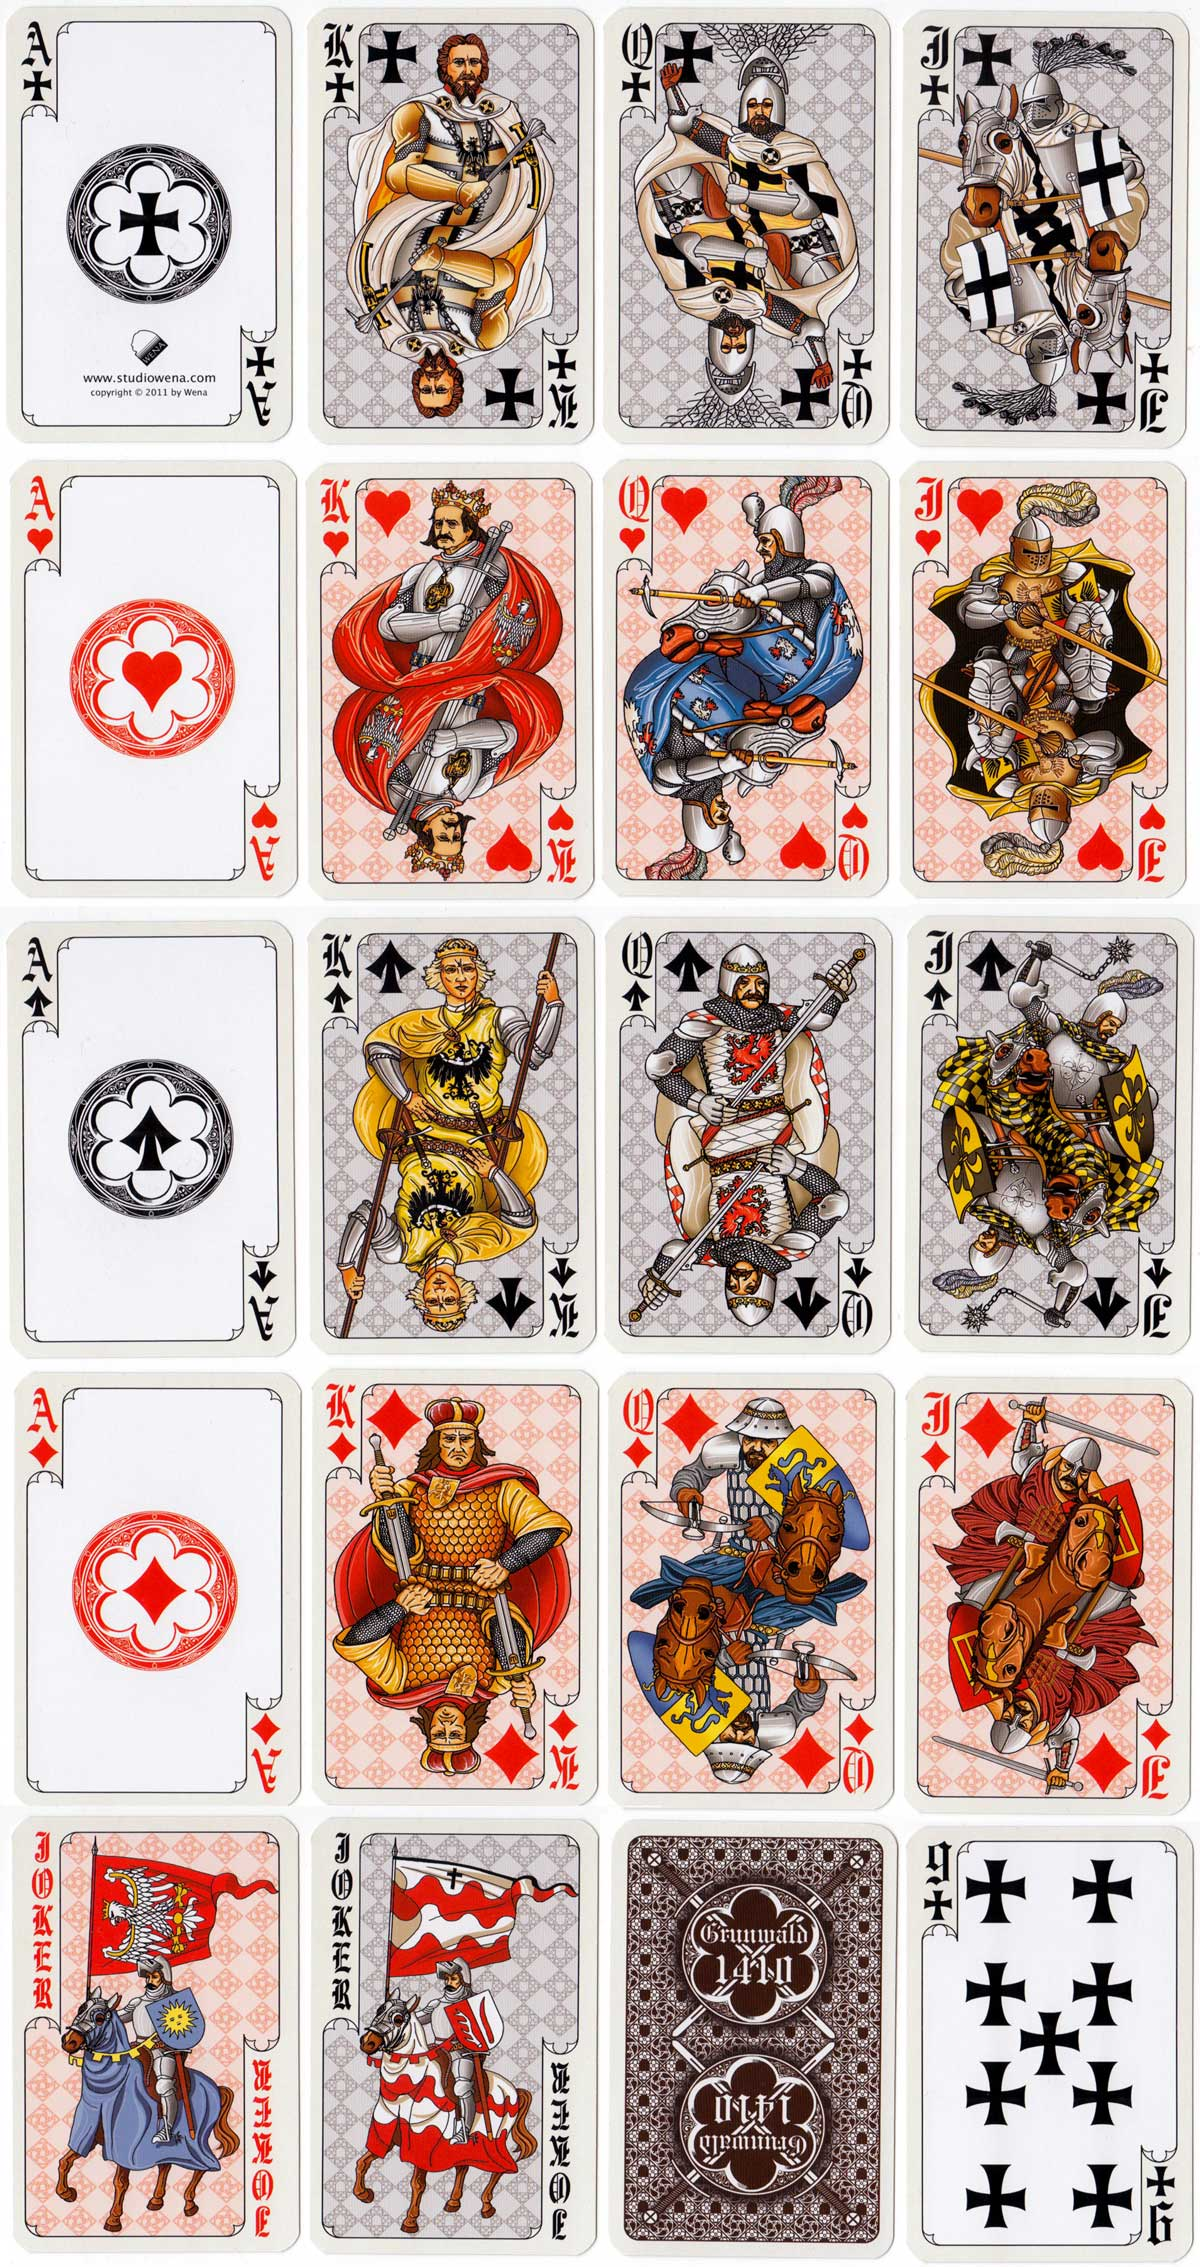 playing cards commemorating the Battle of Grunwald designed and published by Studio Wena, 2011